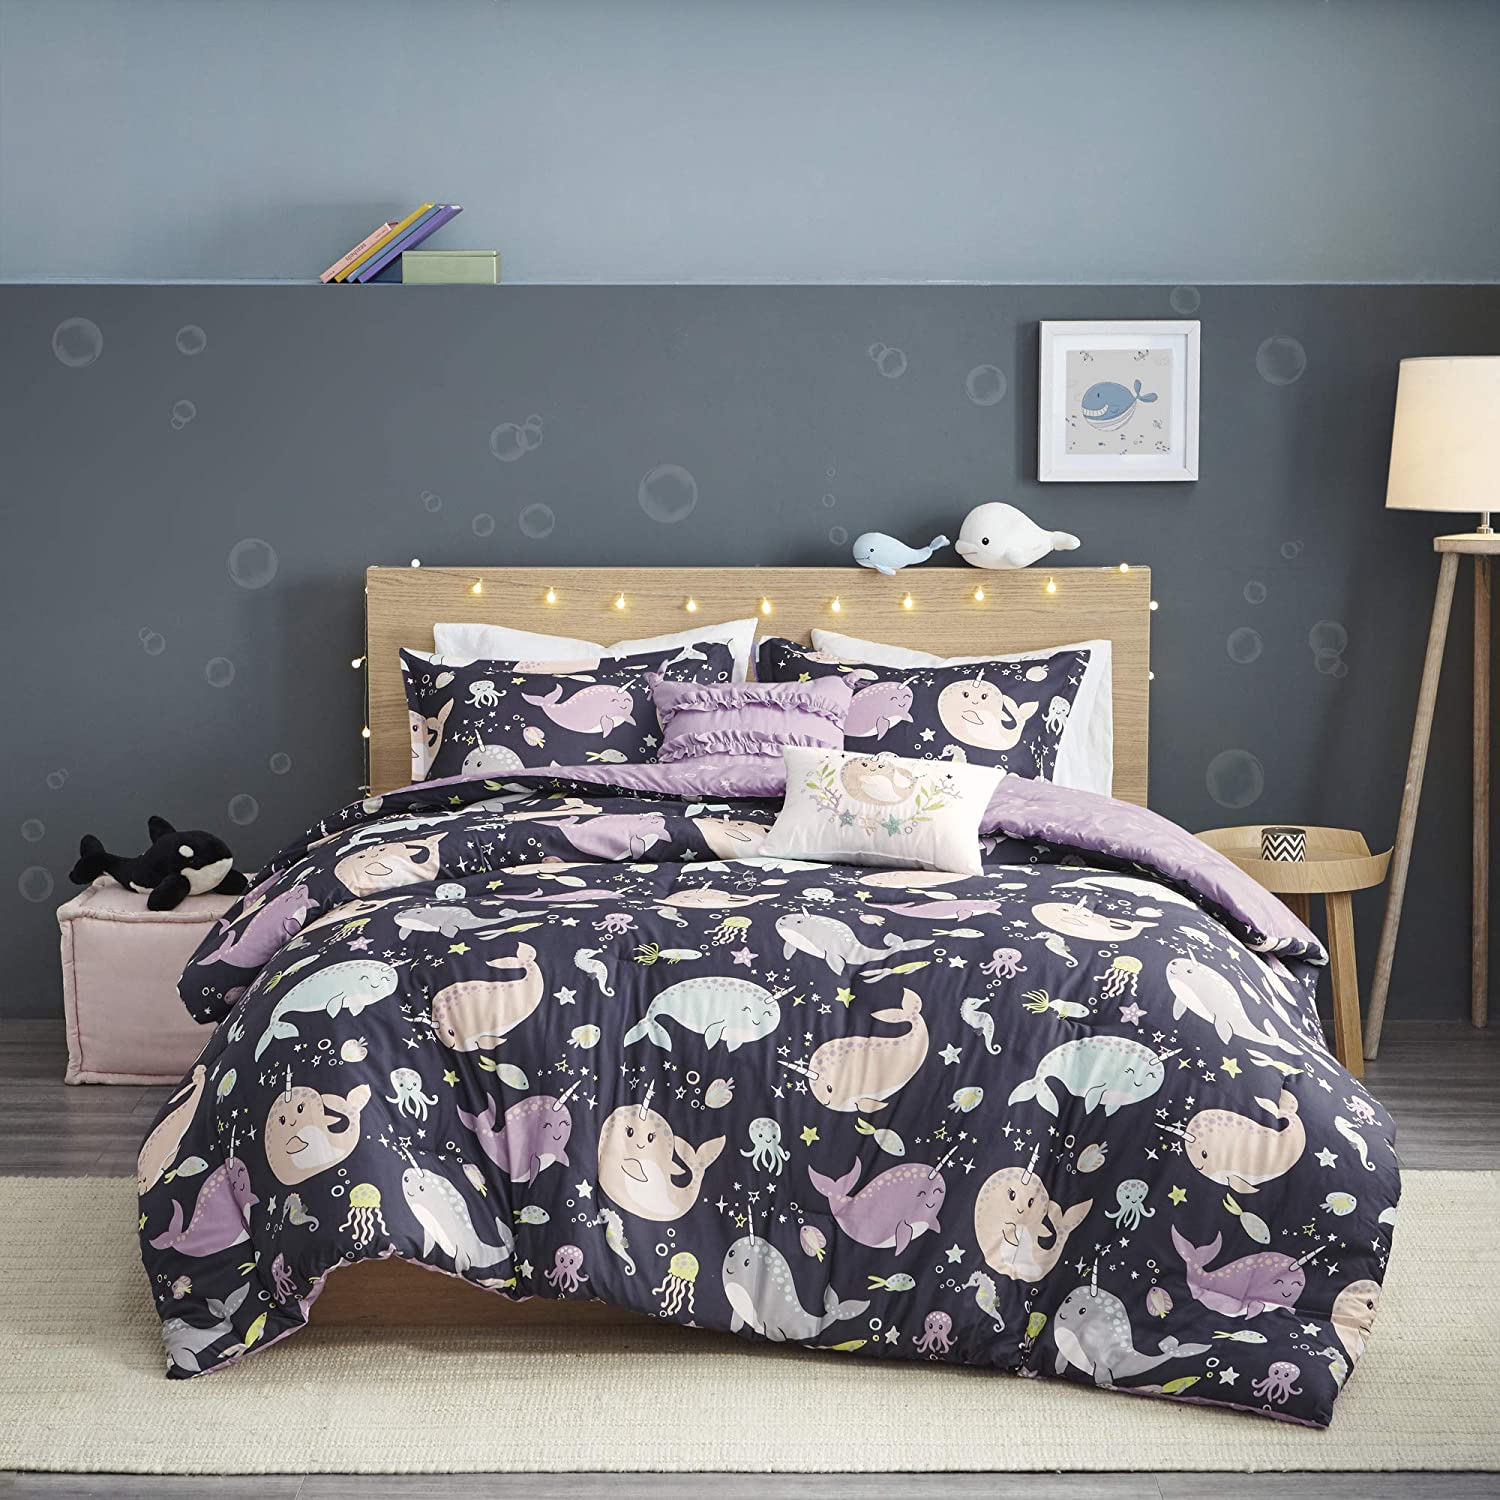 "Urban Habitat Kids Magical Narwhals Reversible 100% Cotton Comforter, Novel Animal Print Modern All Season Down Alternative Bed Set for Kids, Decorative Pillows, Twin(68""x88""), Purple Multi 4 Piece"